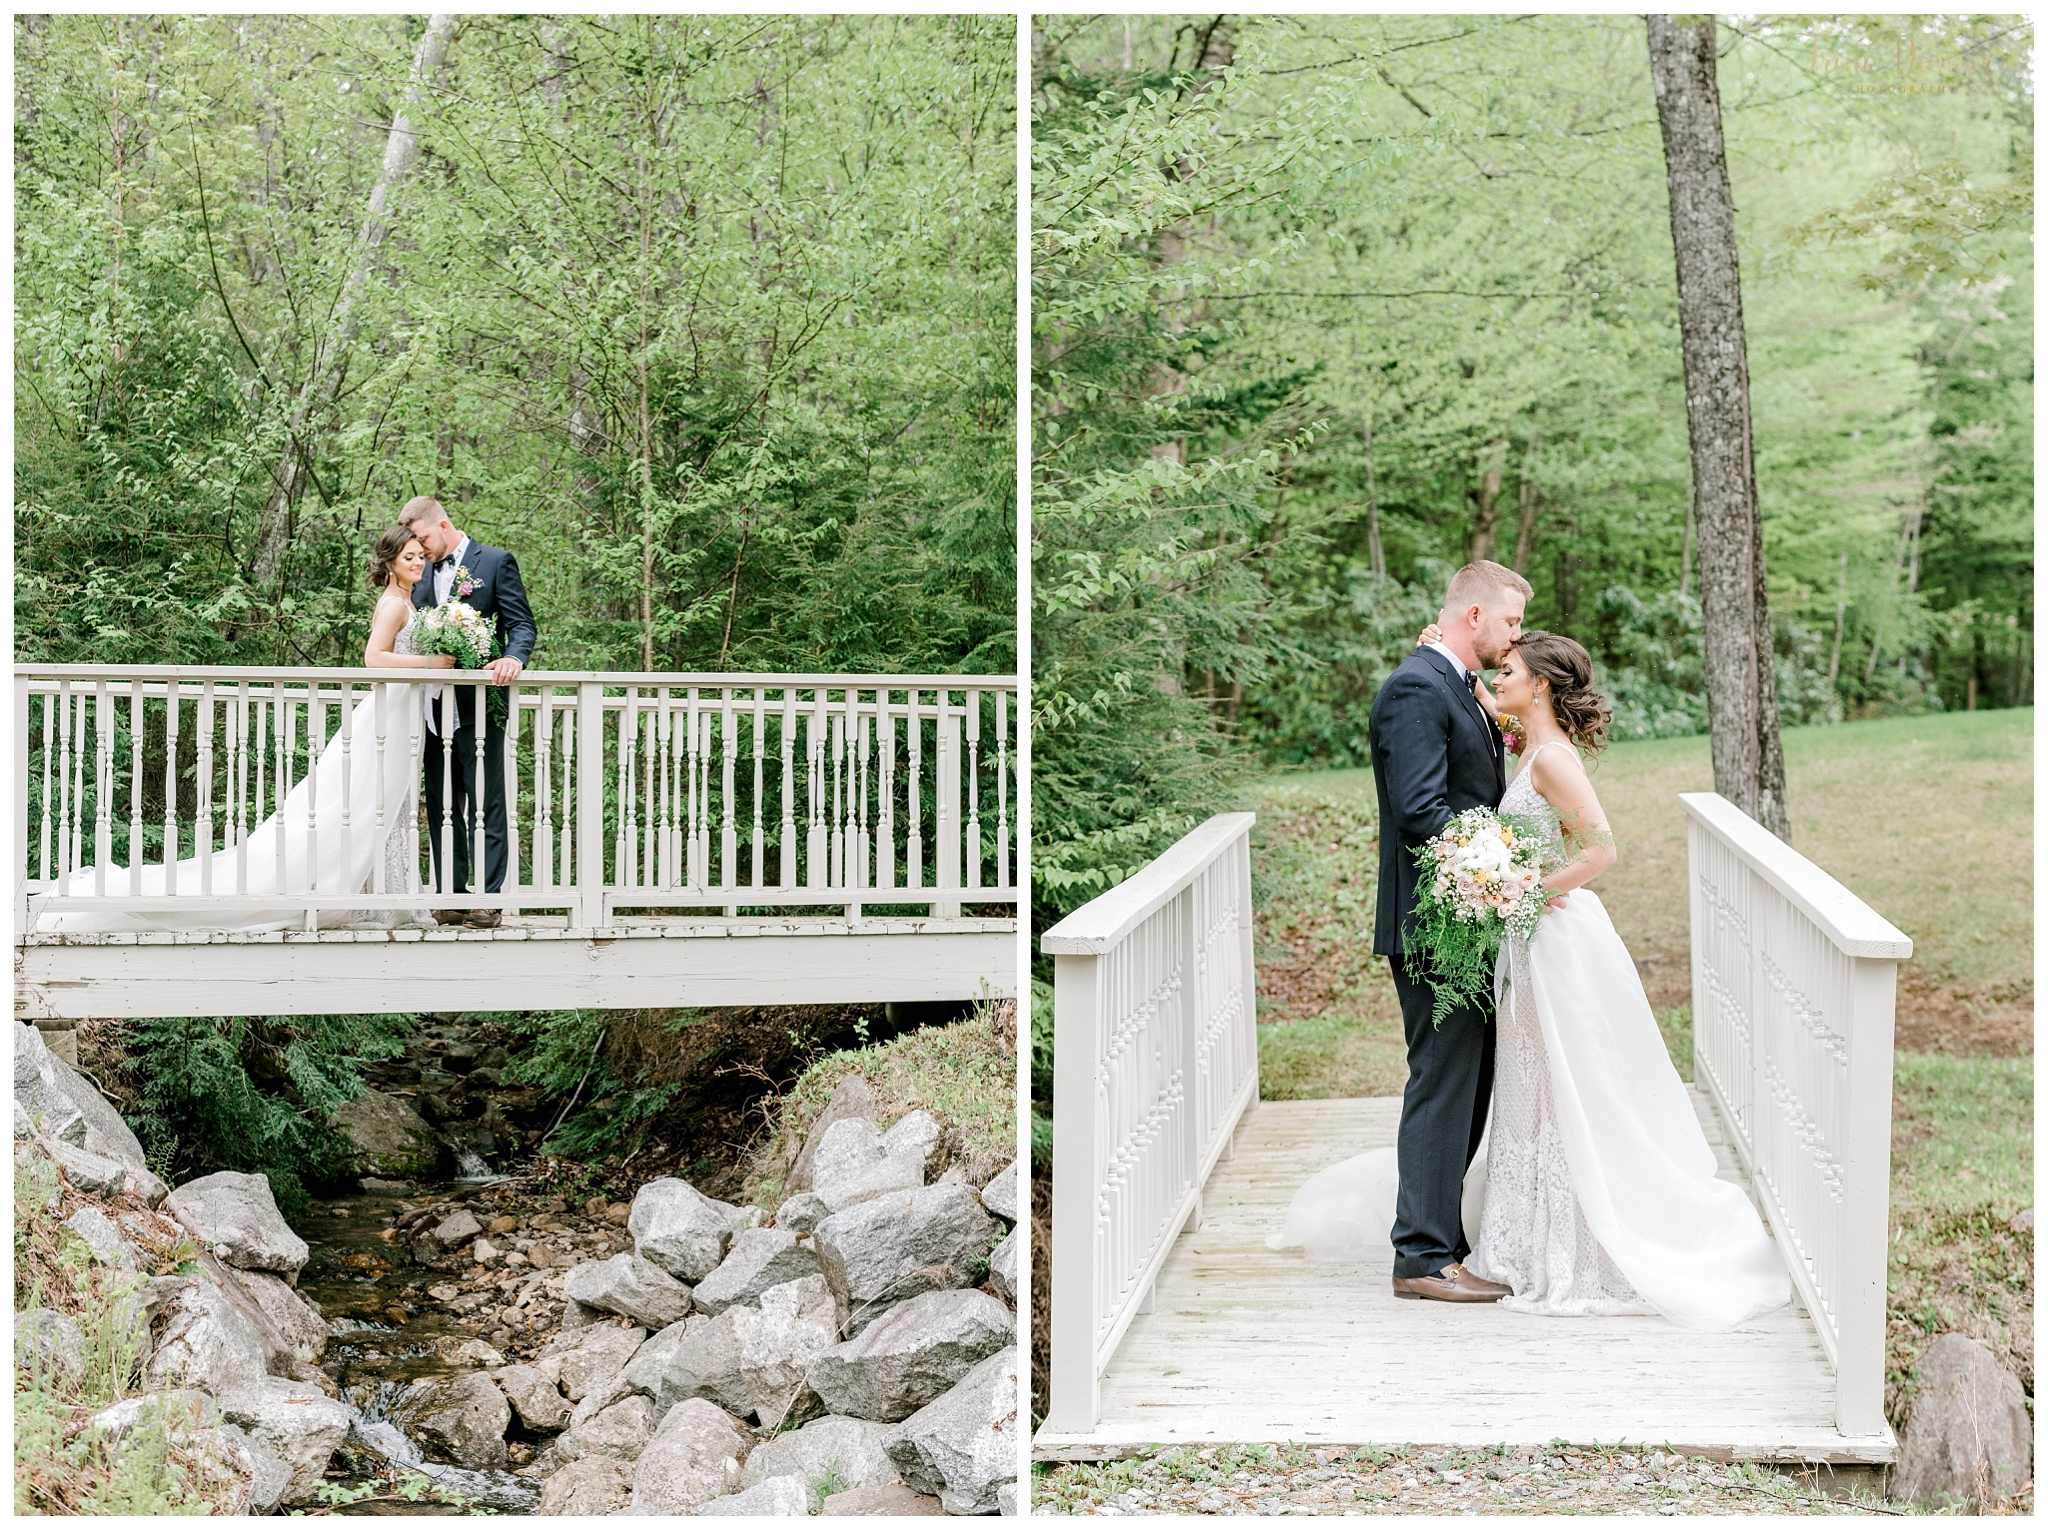 Hara and Tyler's Wedding at the Grand Summit Hotel at Sunday River in Newry, Maine.